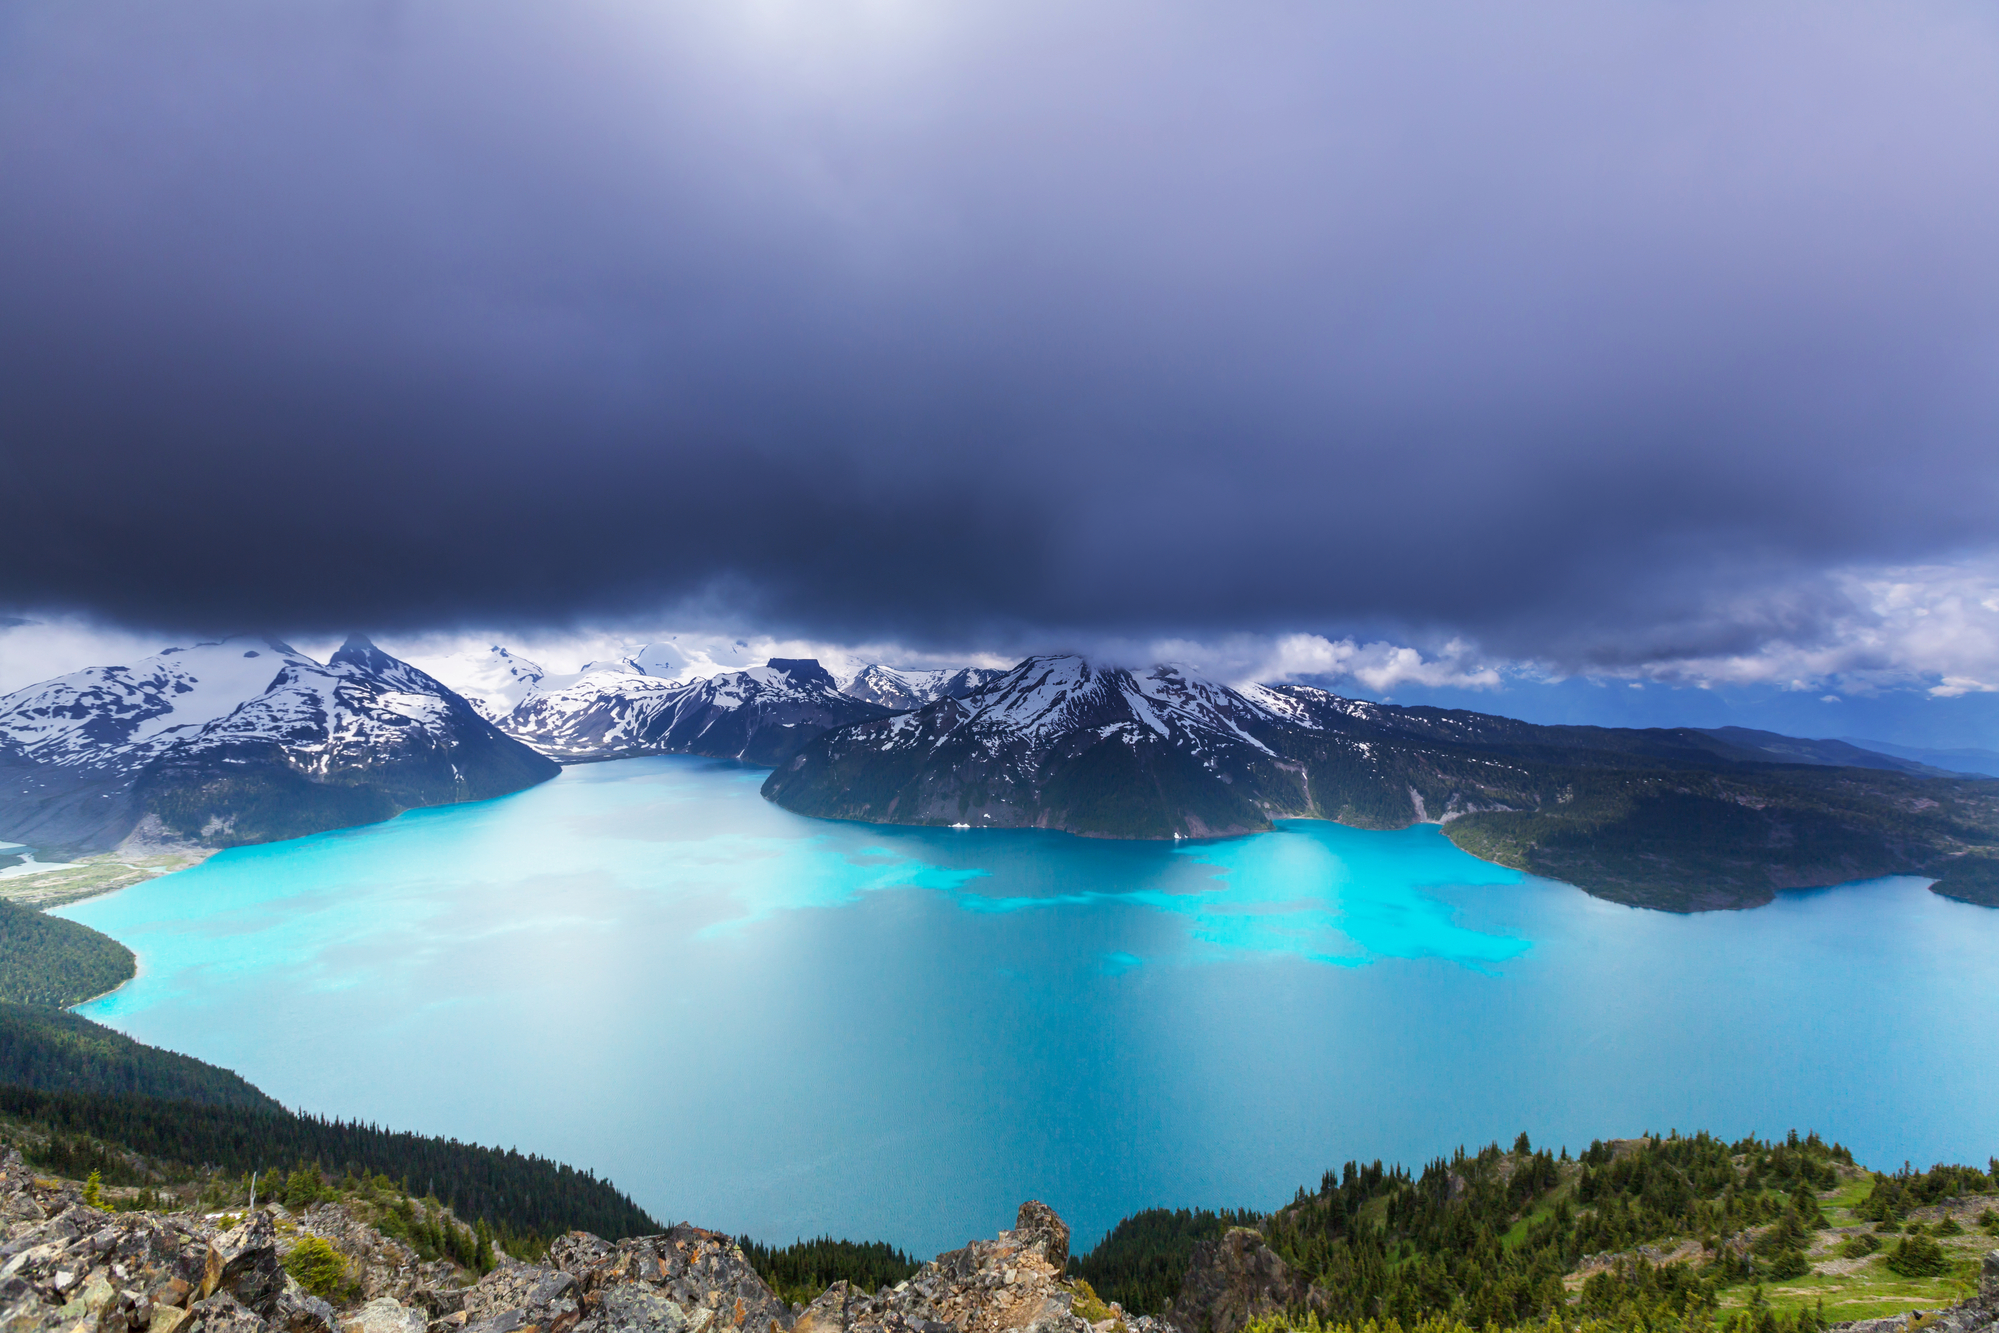 Hike on Garibaldi Lake stock image